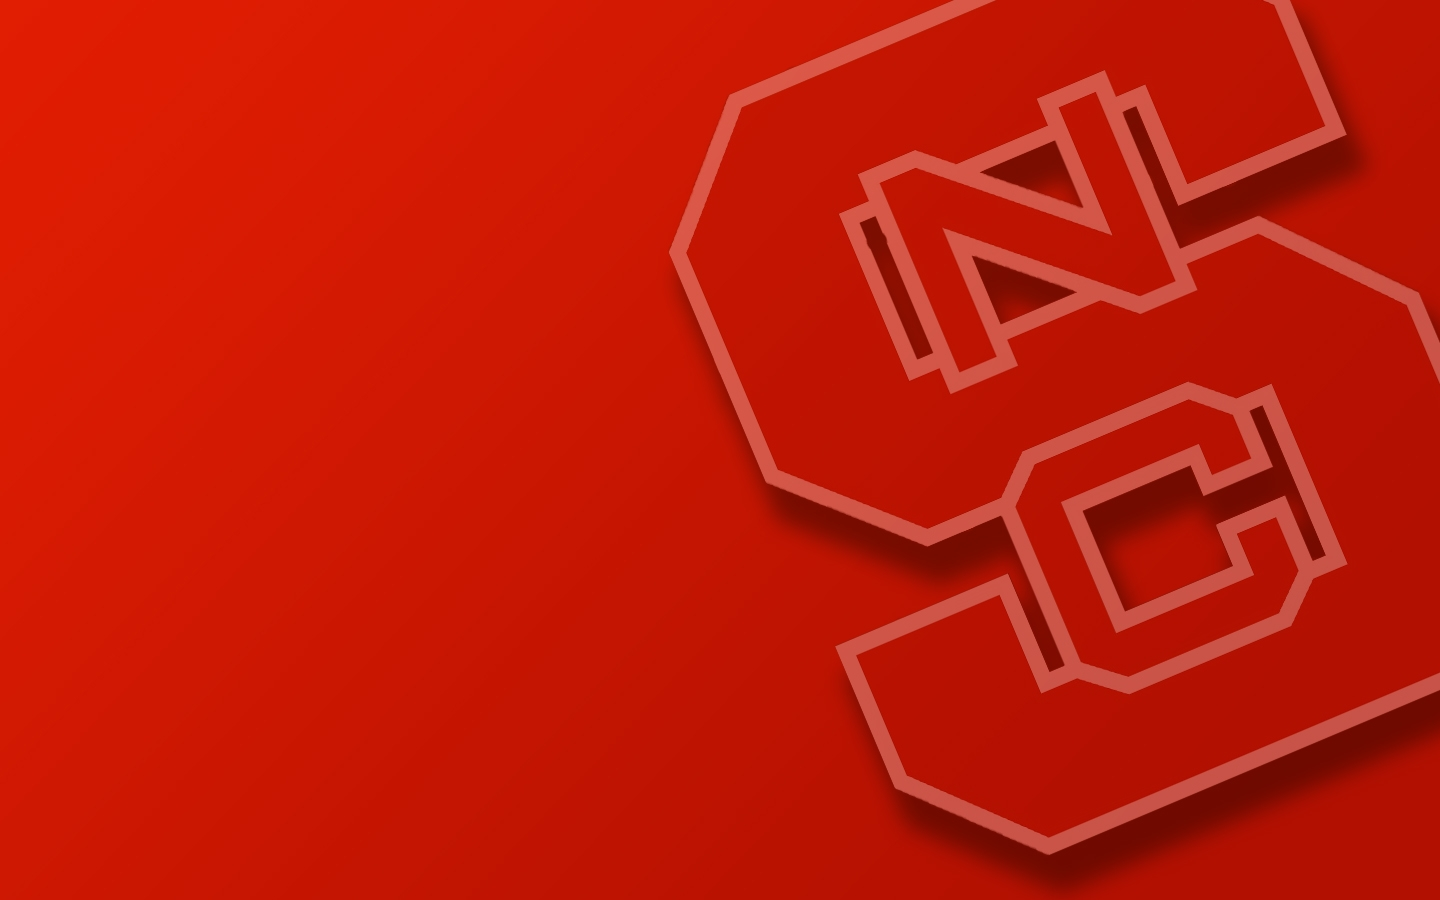 NC State Desktop and mobile wallpaper Wallippo 1440x900